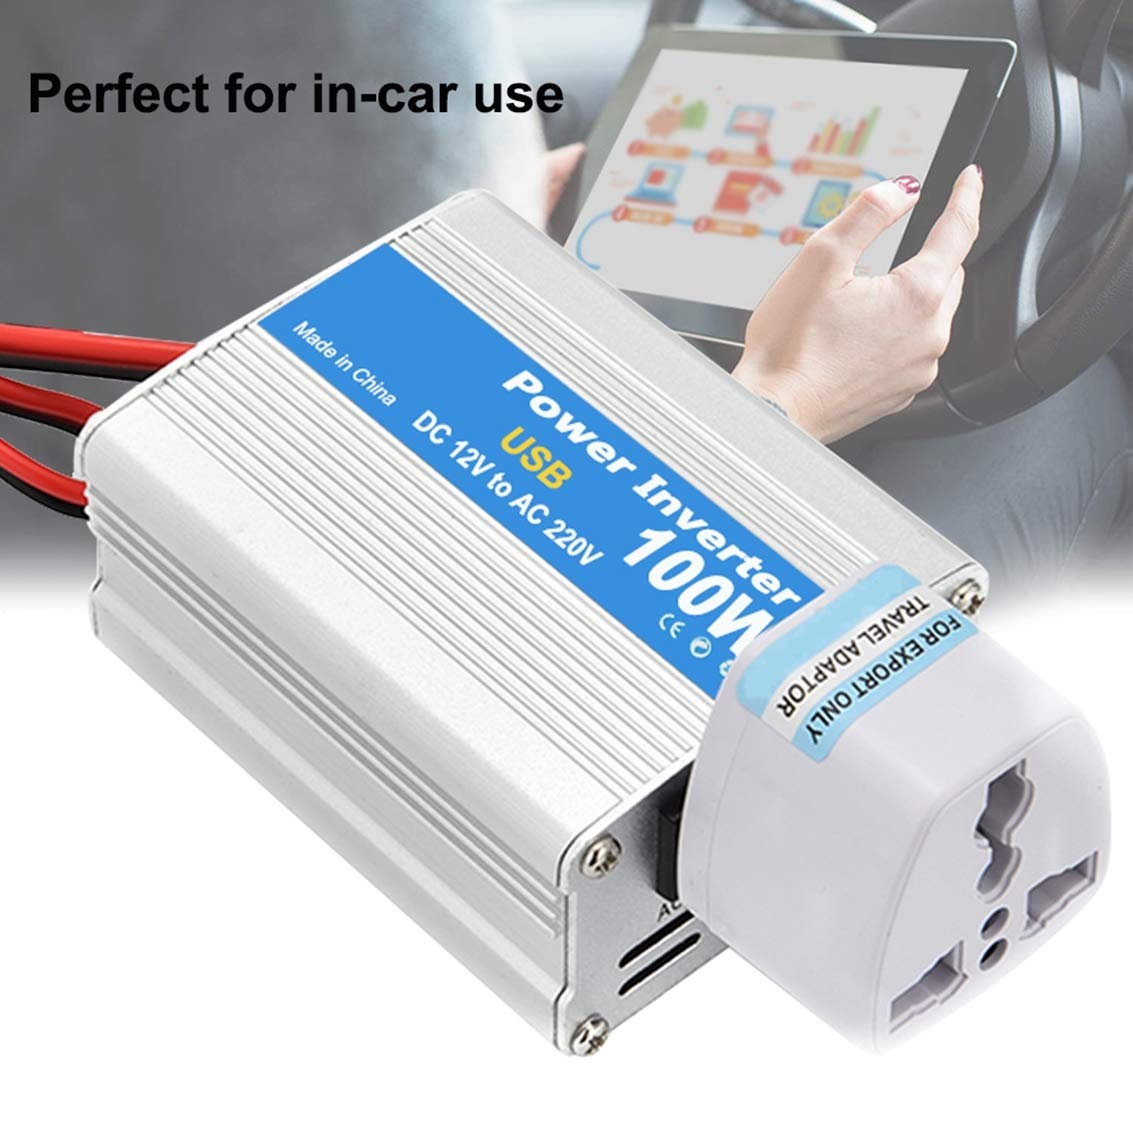 Voltage Transformer with USB Ports and Oulets AWIS 100W Portable Car Power Inverter DC 12V to AC 220V Charger